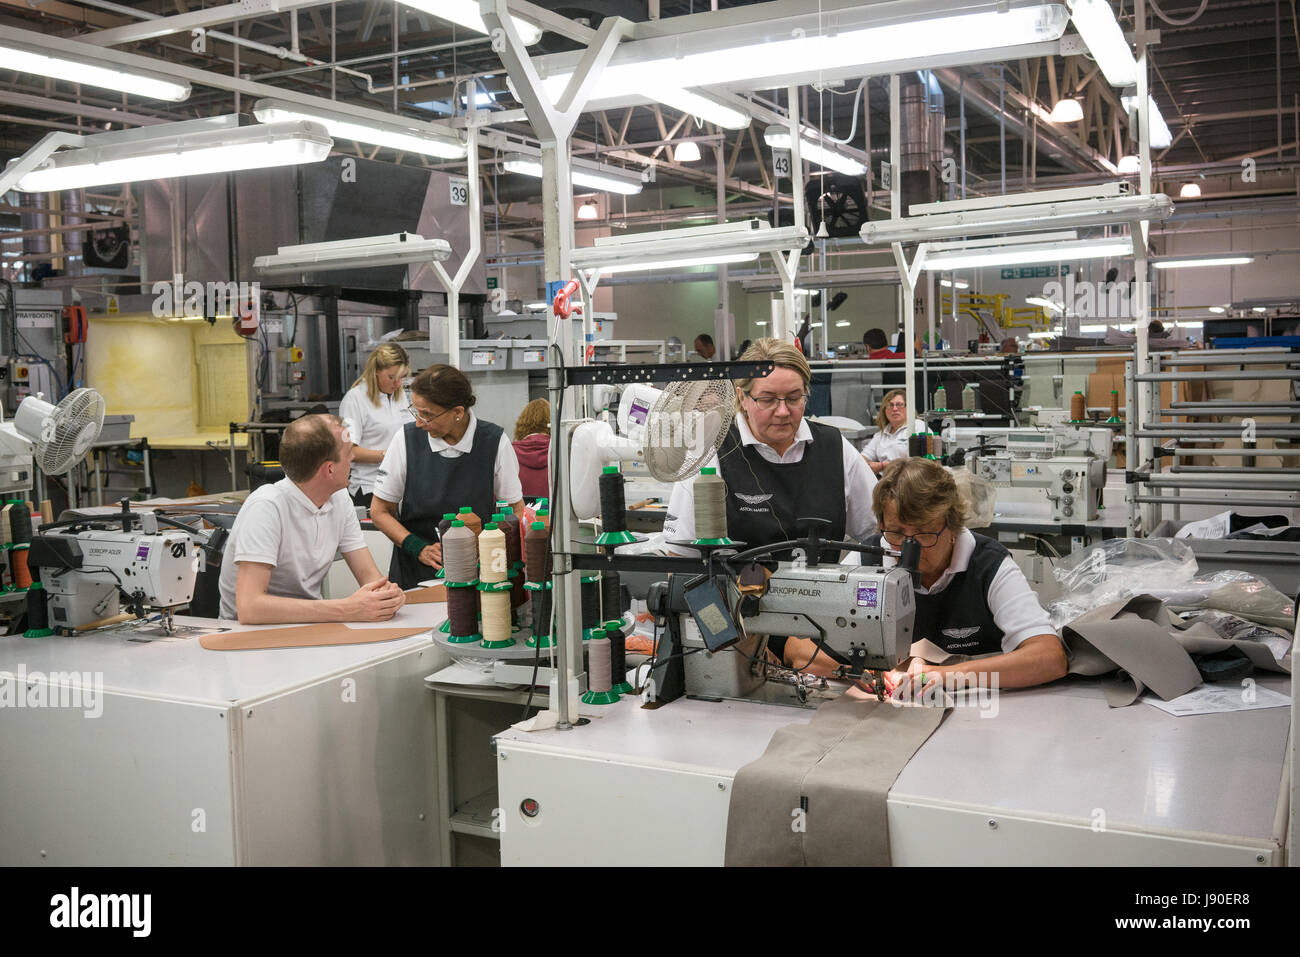 Gaydon, UK - 08/10/2016. Seamstresses in the Aston Martin Factory. Leather seats and detailing is sewn before being - Stock Image